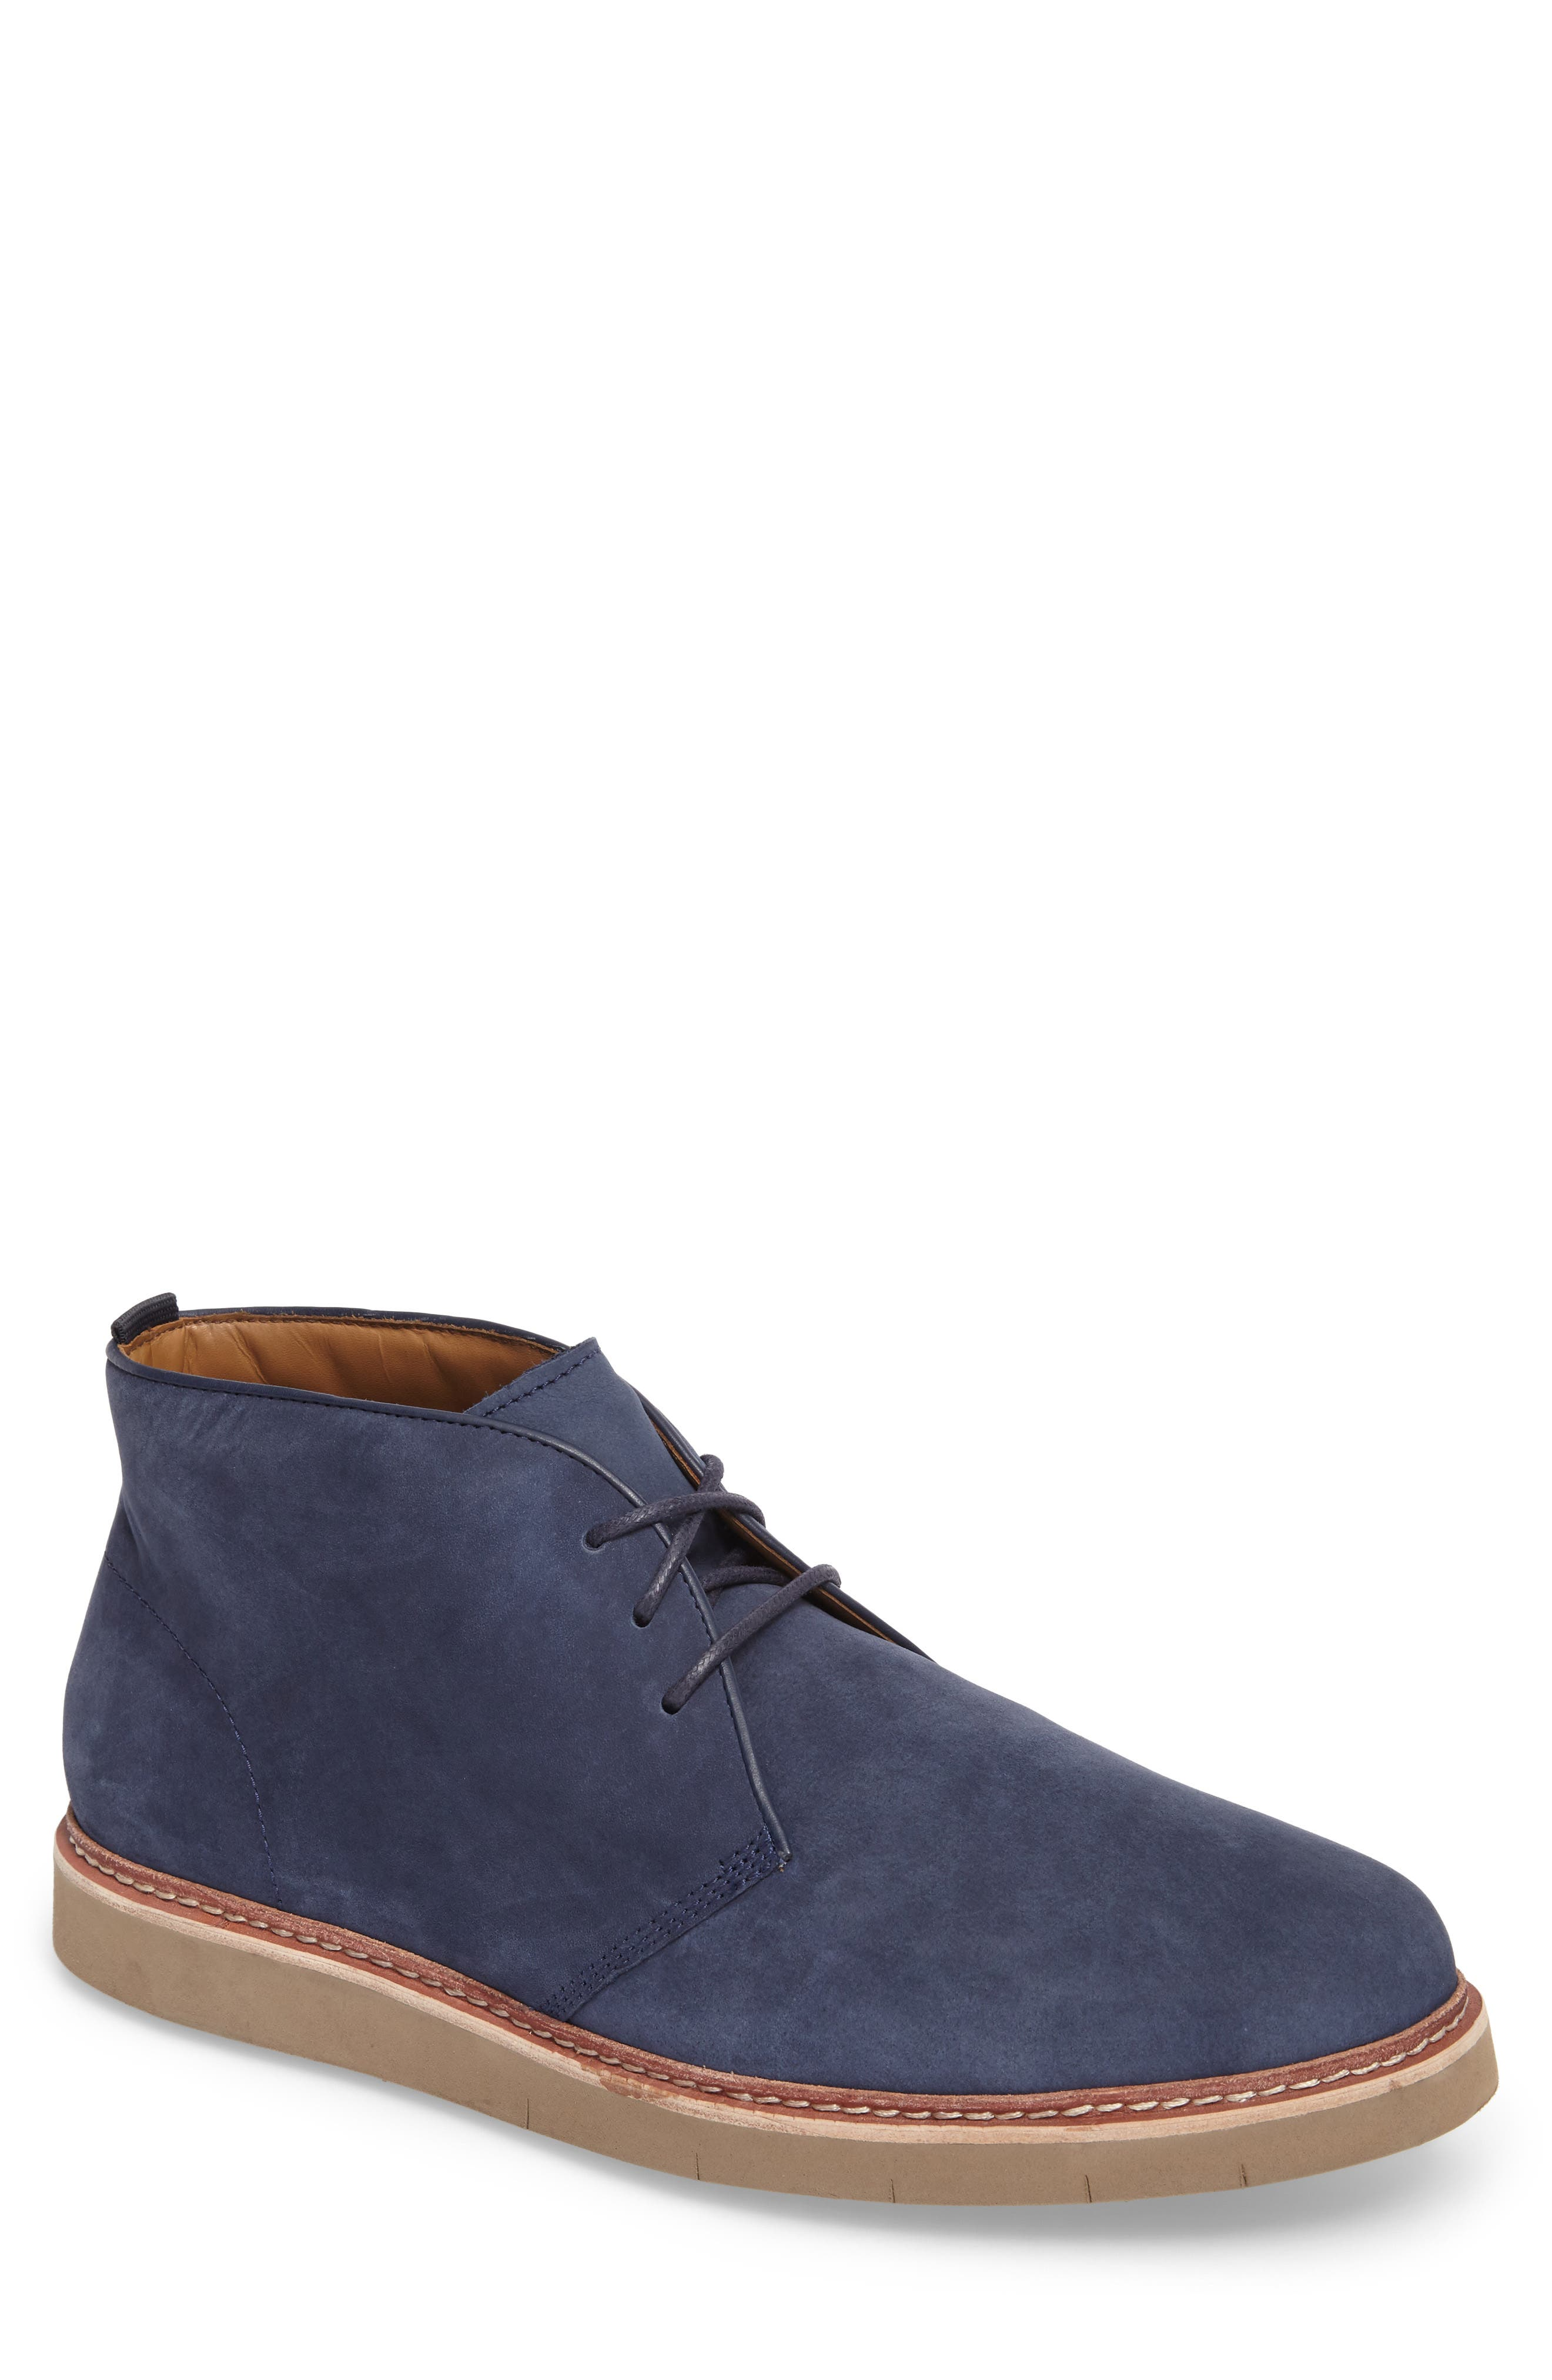 Alternate Image 1 Selected - Cole Haan Tanner Chukka Boot (Men)